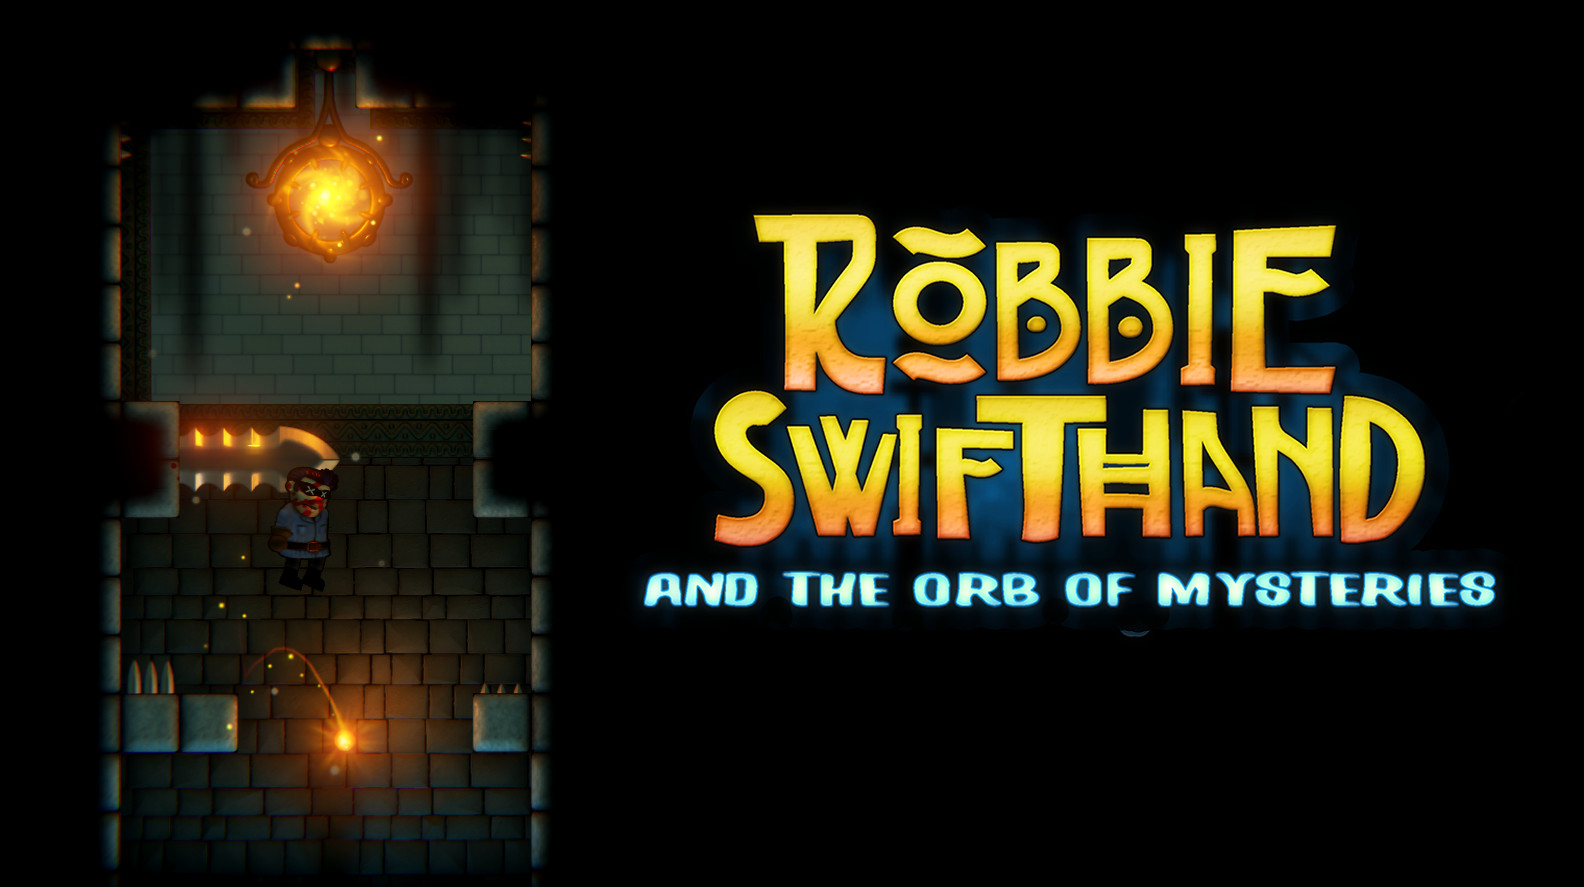 What's On Steam - Robbie Swifthand and the Orb of Mysteries